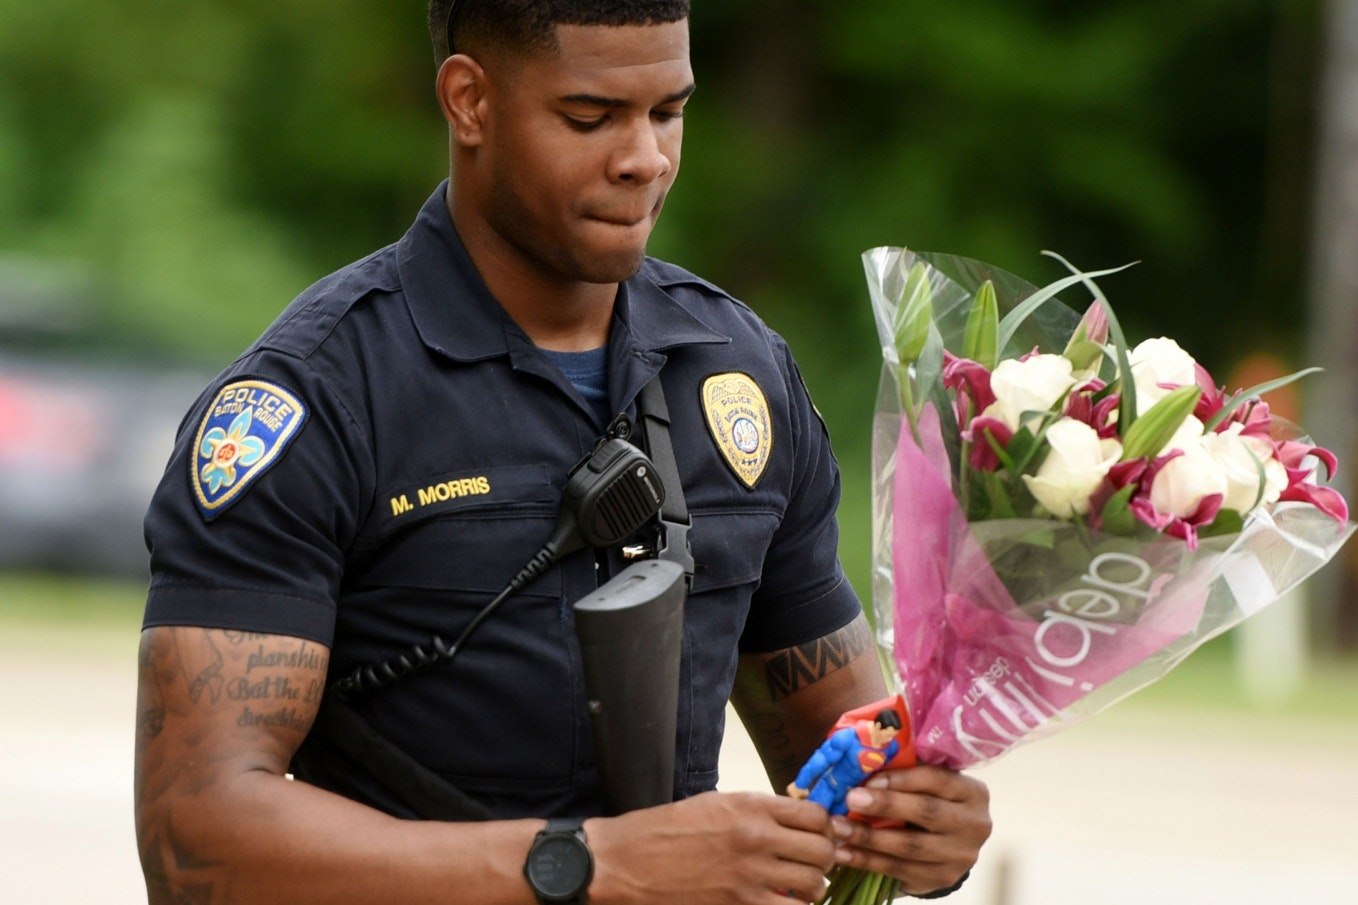 A police officer holding flowers and a Superman action figure